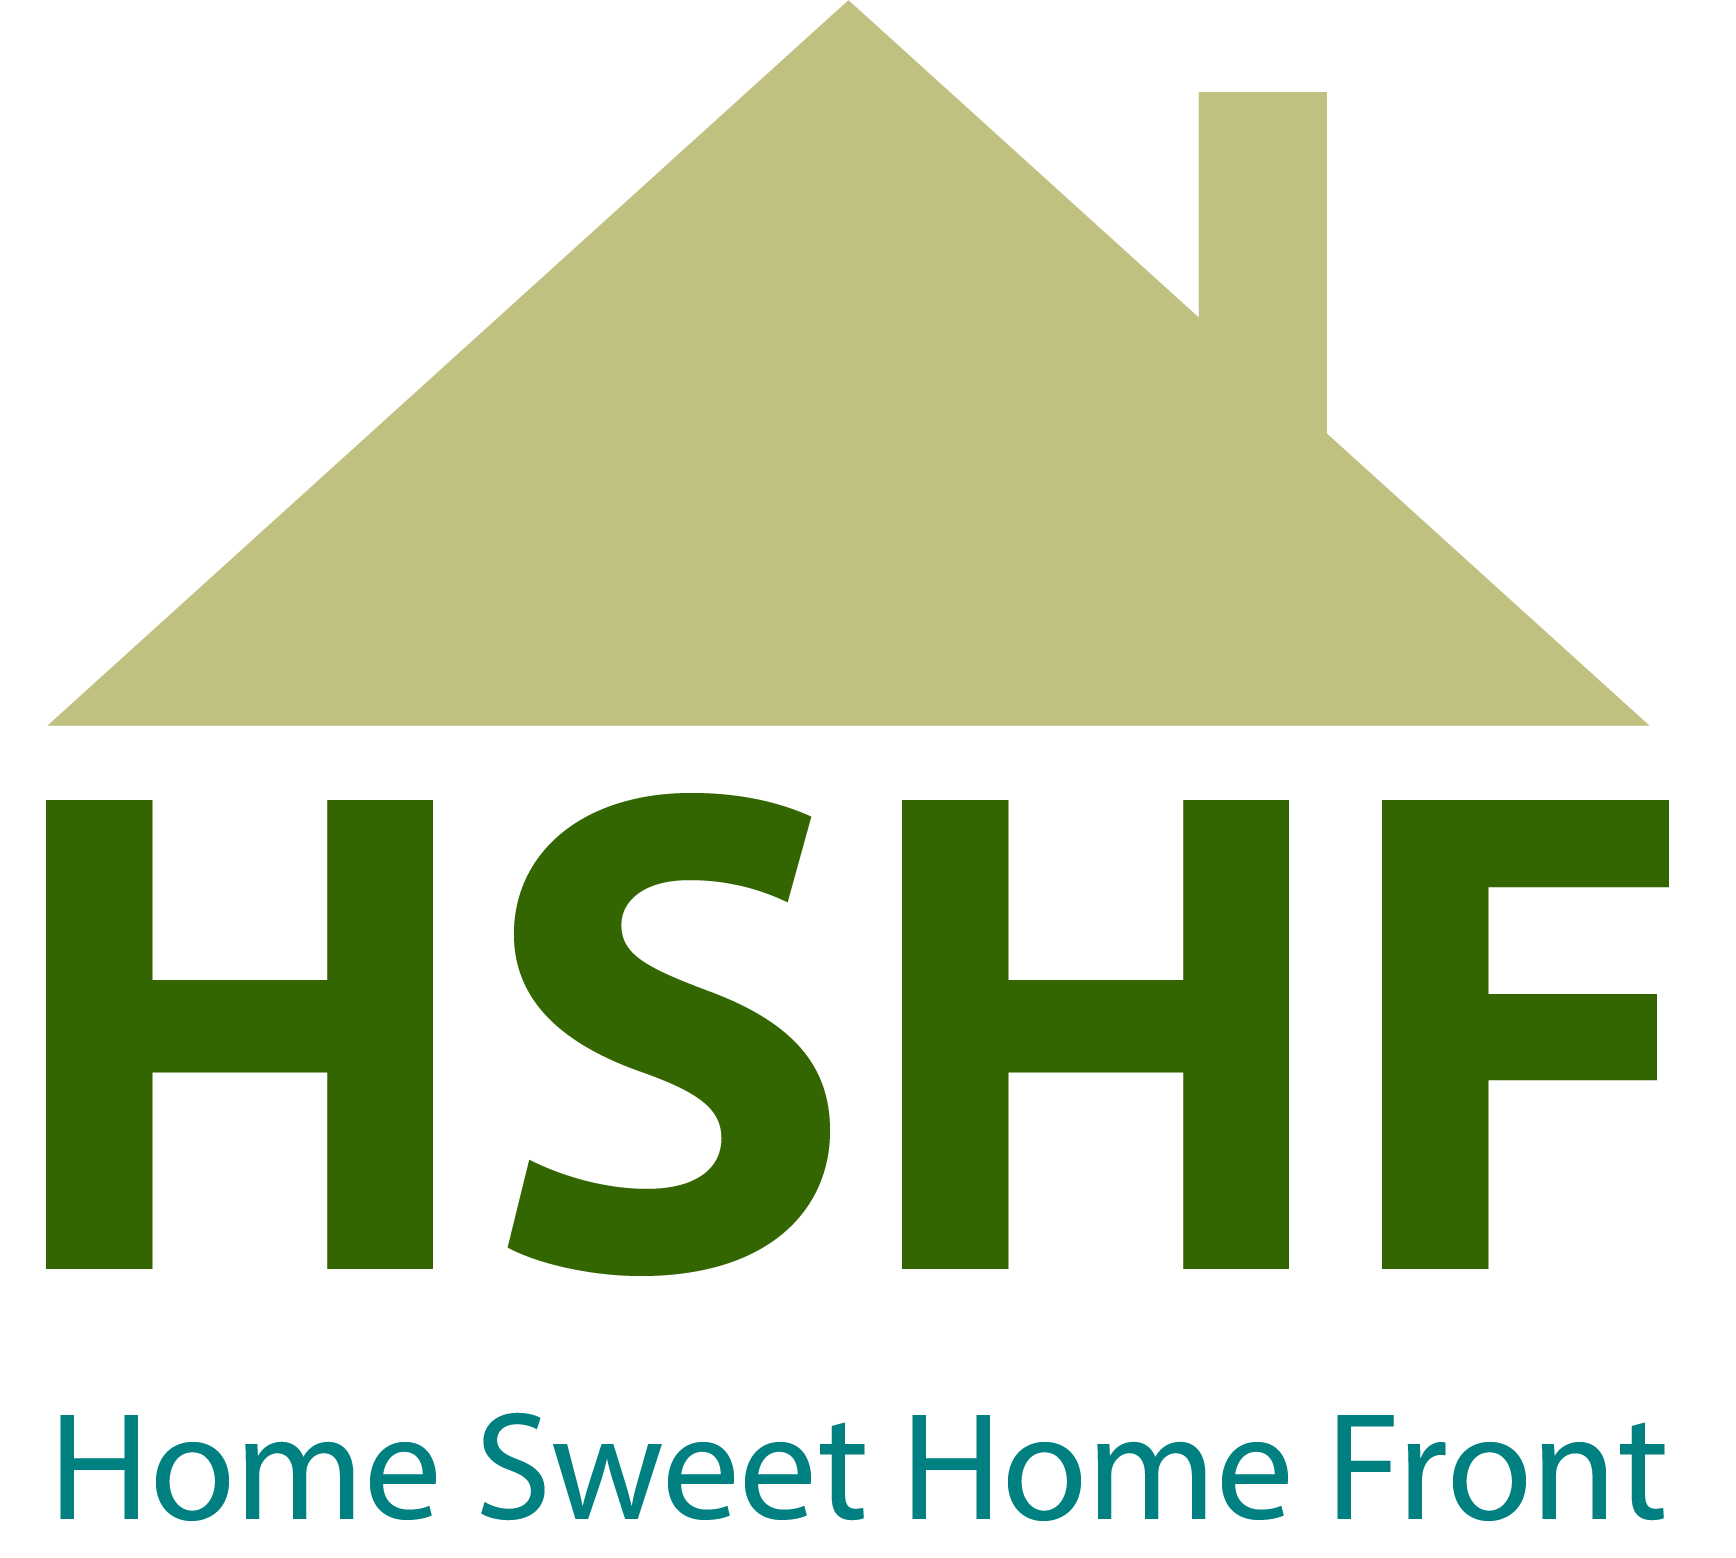 An Image of the 'Home Sweet Home Front' Logo